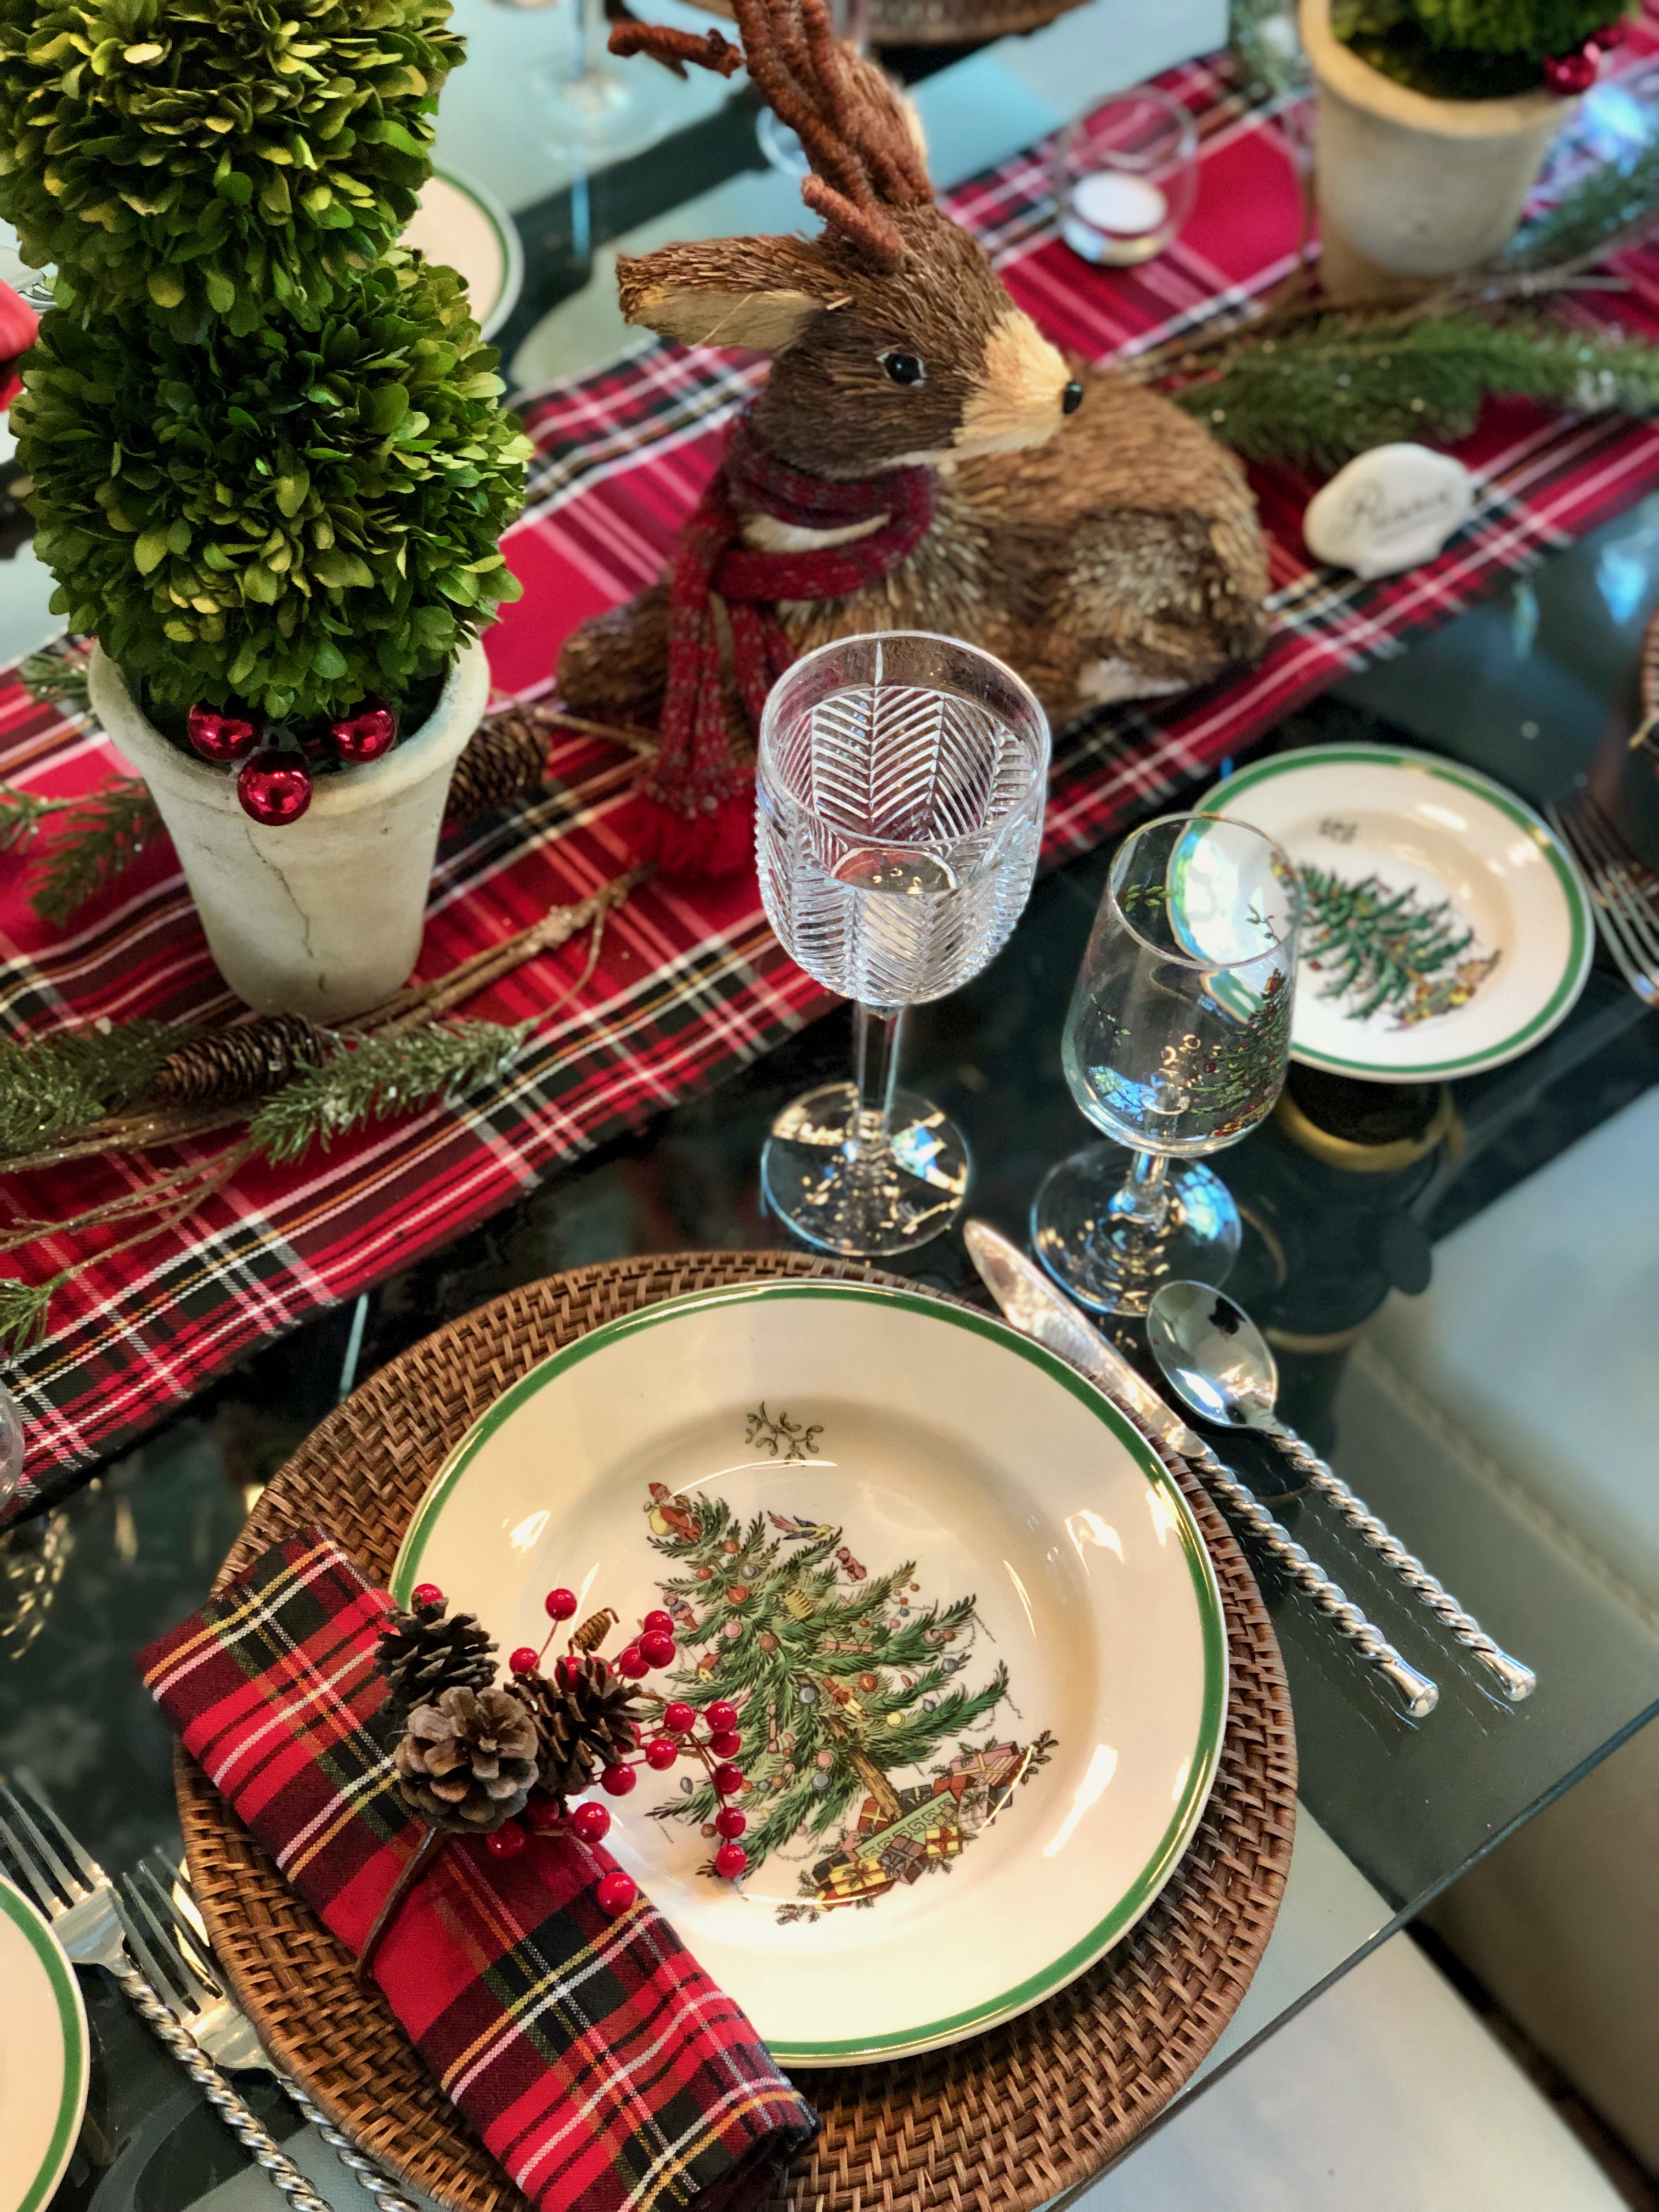 Spode Dishes With Tartan Napkins and berry napkin rings. Ralph Lauren water goblet with Spode wine glass